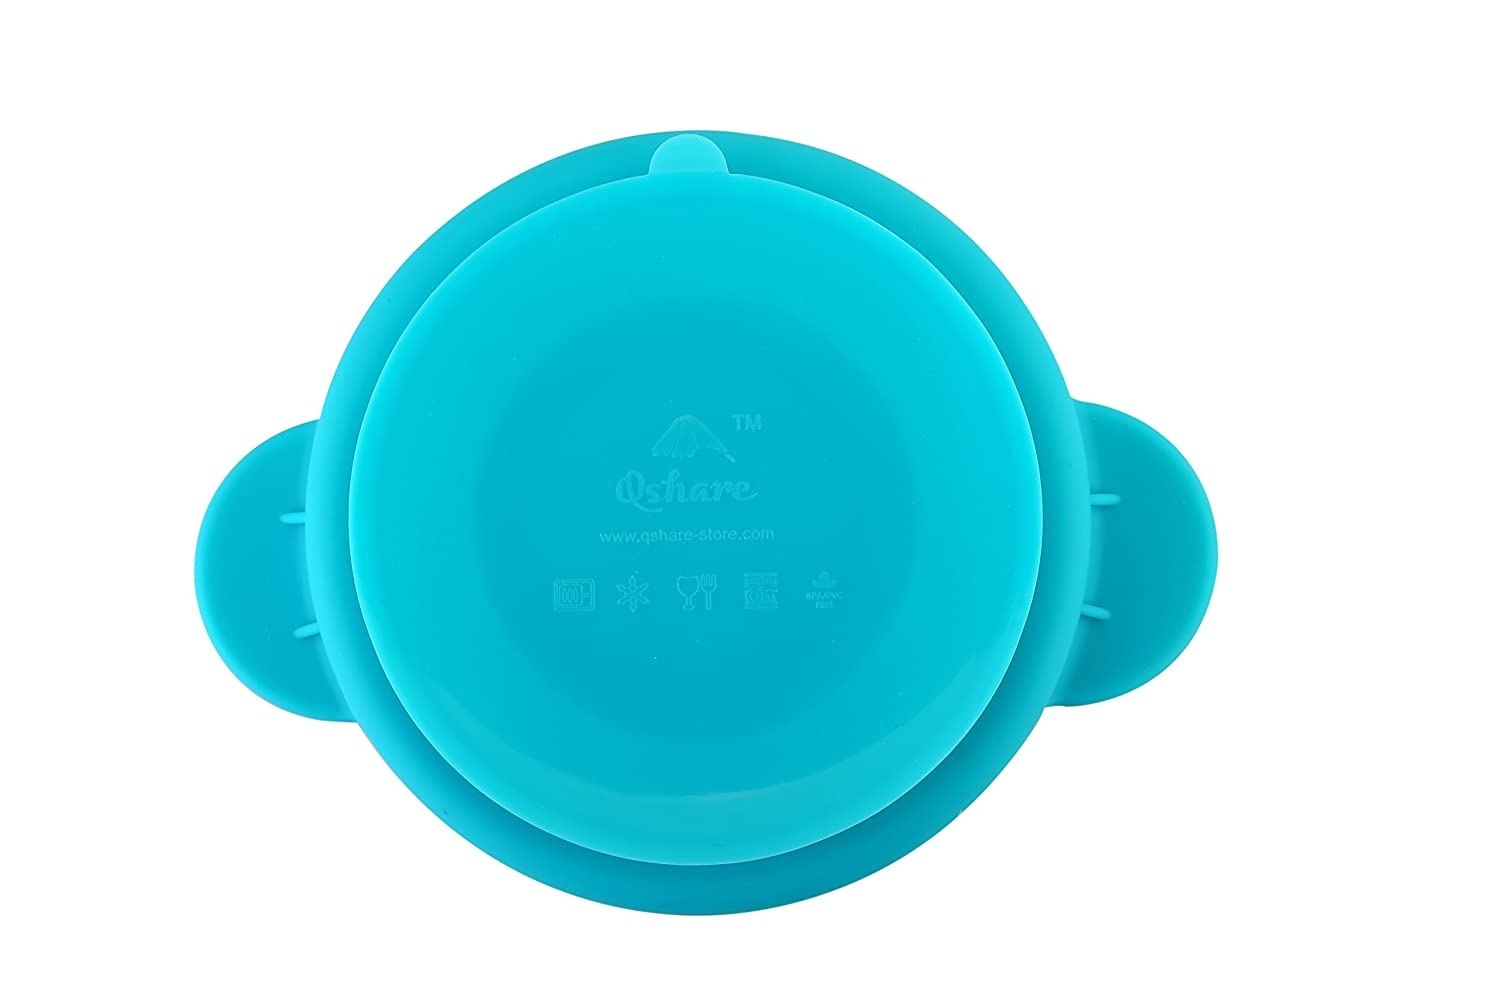 1Little-Cow, Grey-Cow Qshare Toddler Plates Dishwasher and Microwave Safe Silicone Placemat 28 * 20 * 2.5cm Portable Baby Plate for Toddlers and Kids BPA-Free FDA Approved Strong Suction Plates